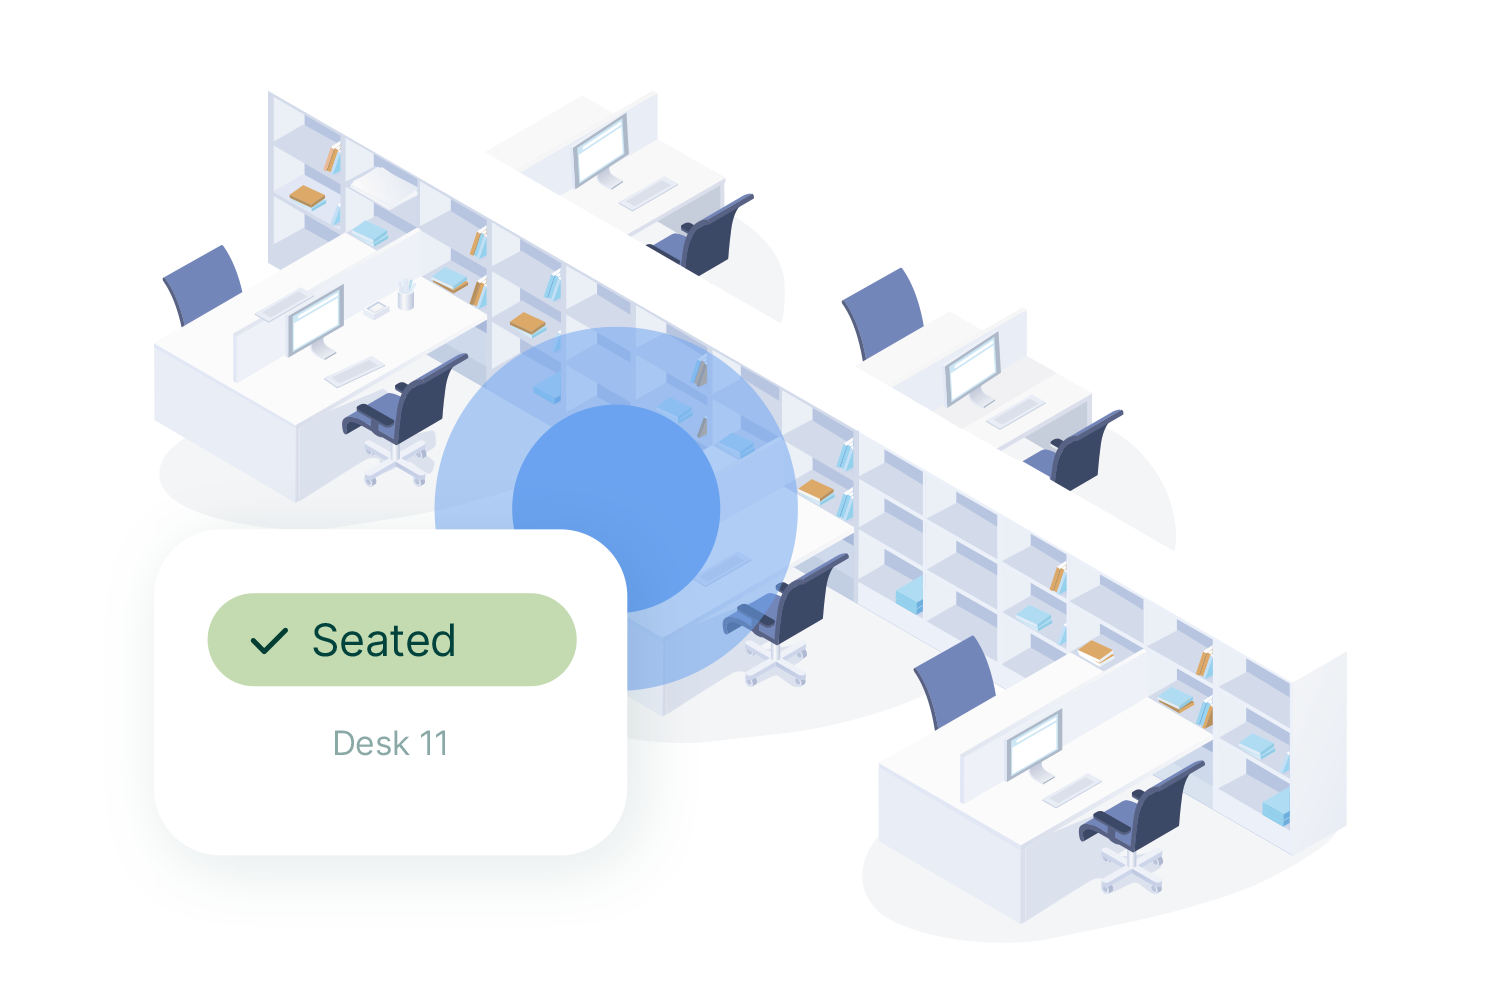 Desk booking allows you to manage your office space